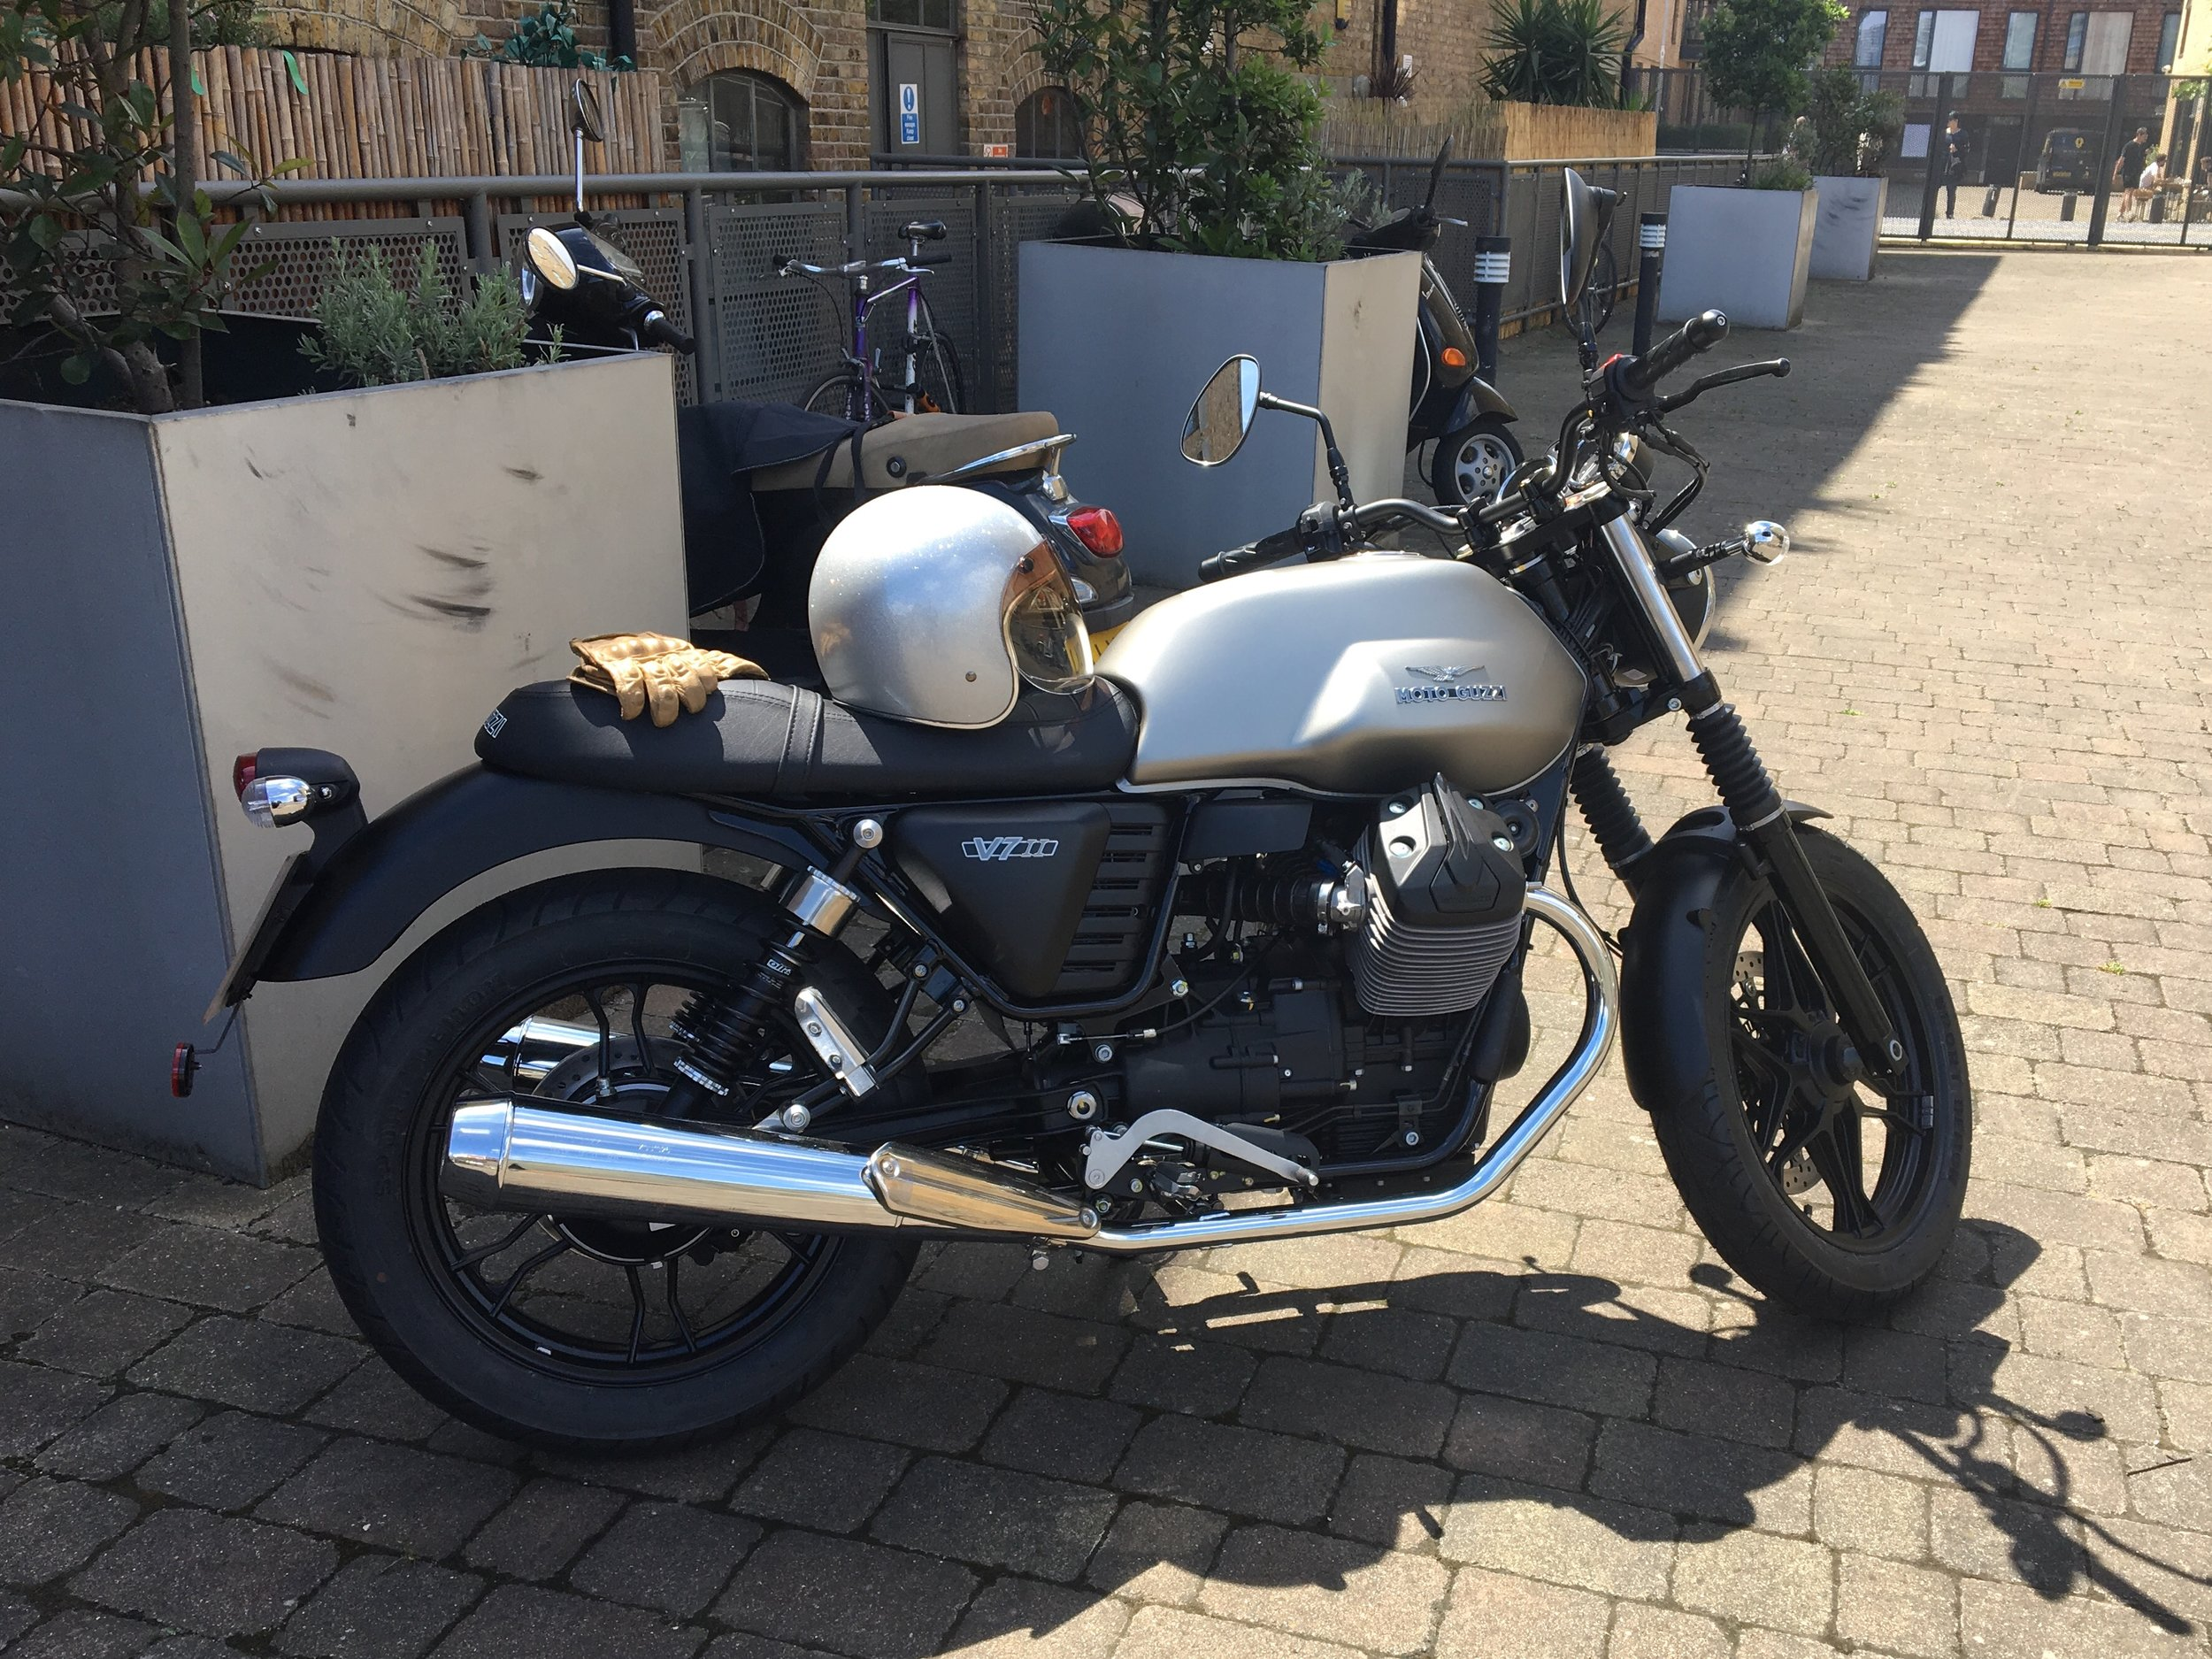 Casual snob - Moto Guzzi V7 II as arrived - no modifications.jpg